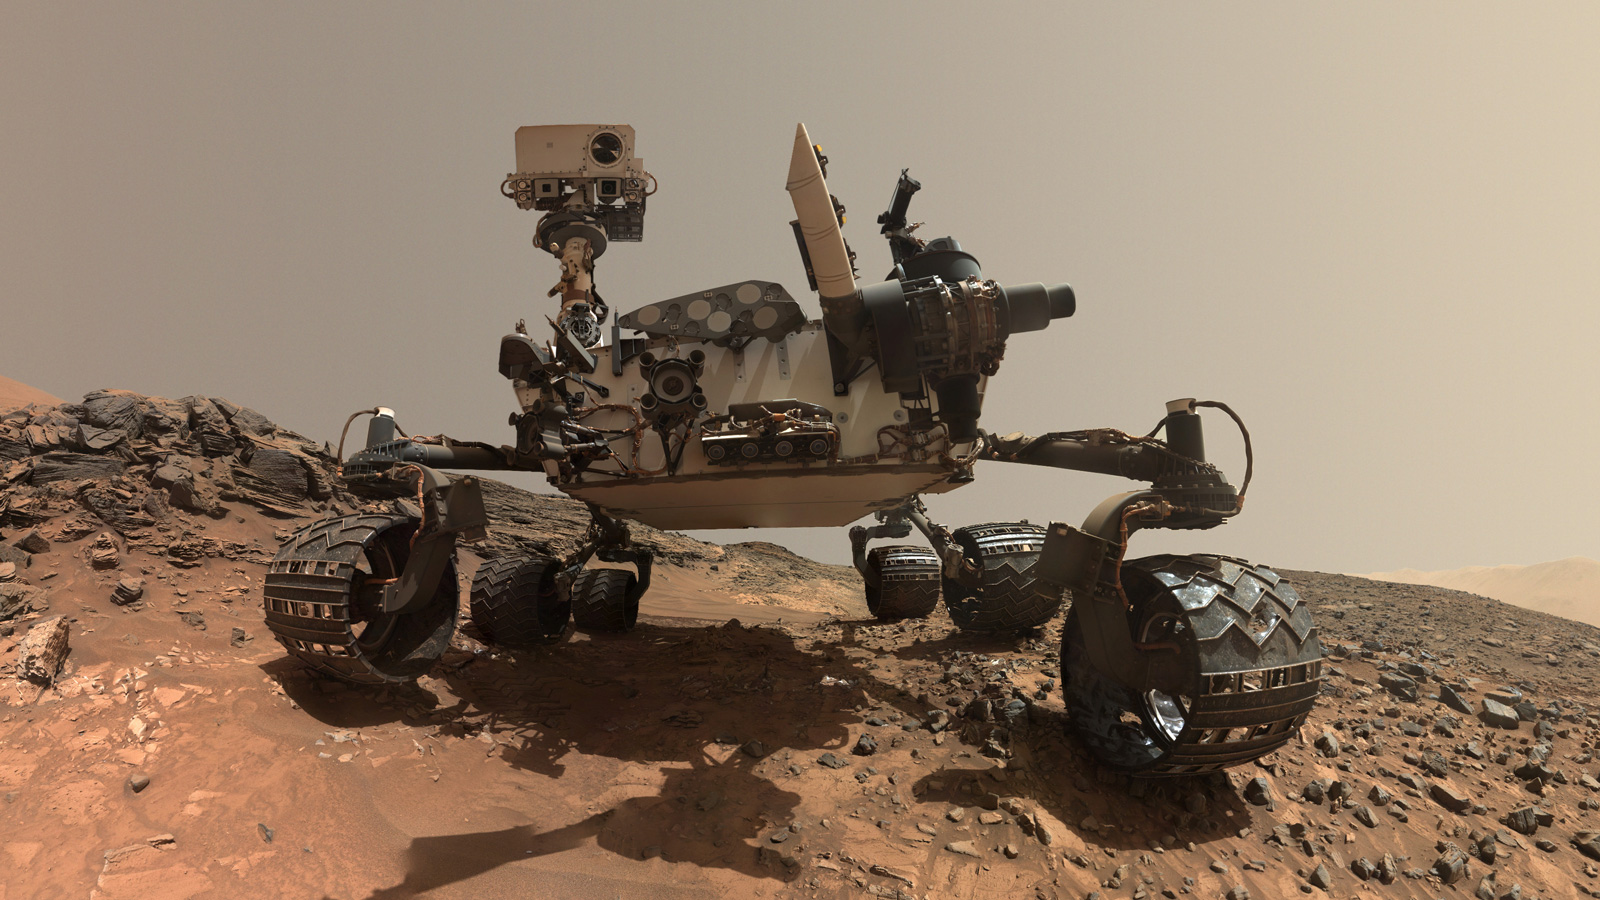 NASA veteran Kevin Watson, who will now lead Launcher's avionics team, has previously worked on the Mars rover (pictured). Image via NASA.